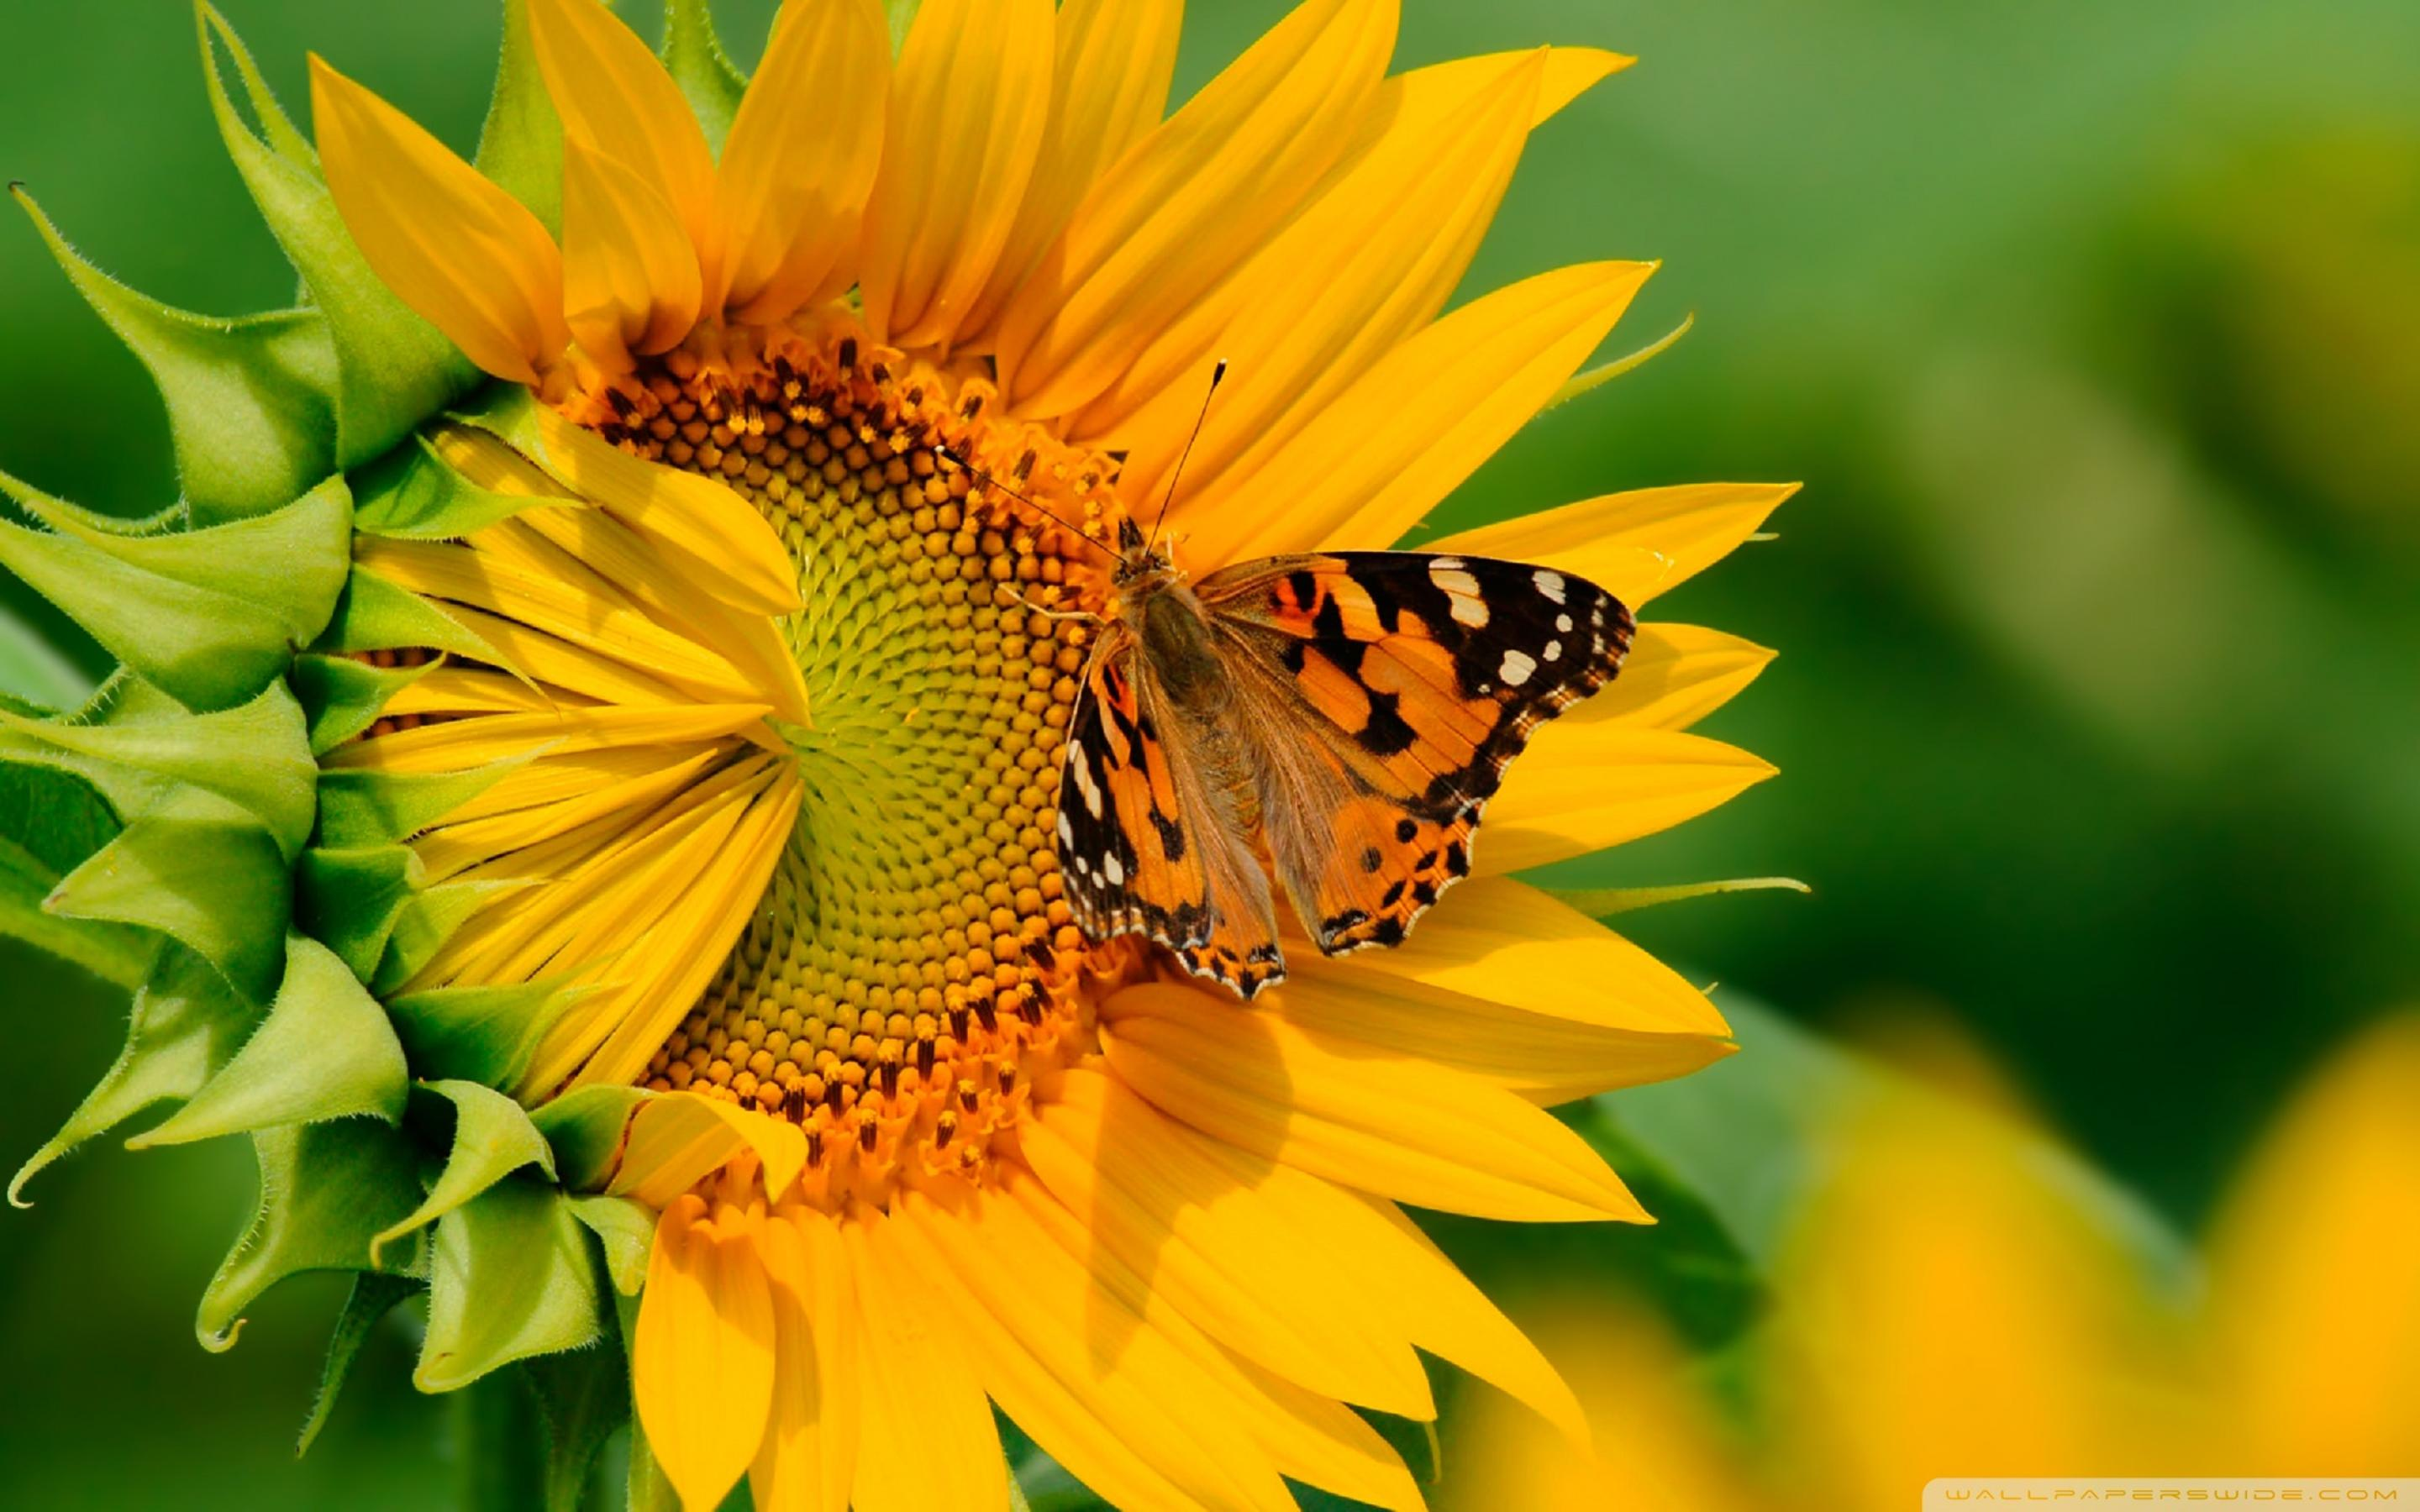 Amazing Wallpaper Macbook Sunflower - big-butterfly-on-a-sunflower-hd-wallpaper-2880x1800  Perfect Image Reference_41774.jpg